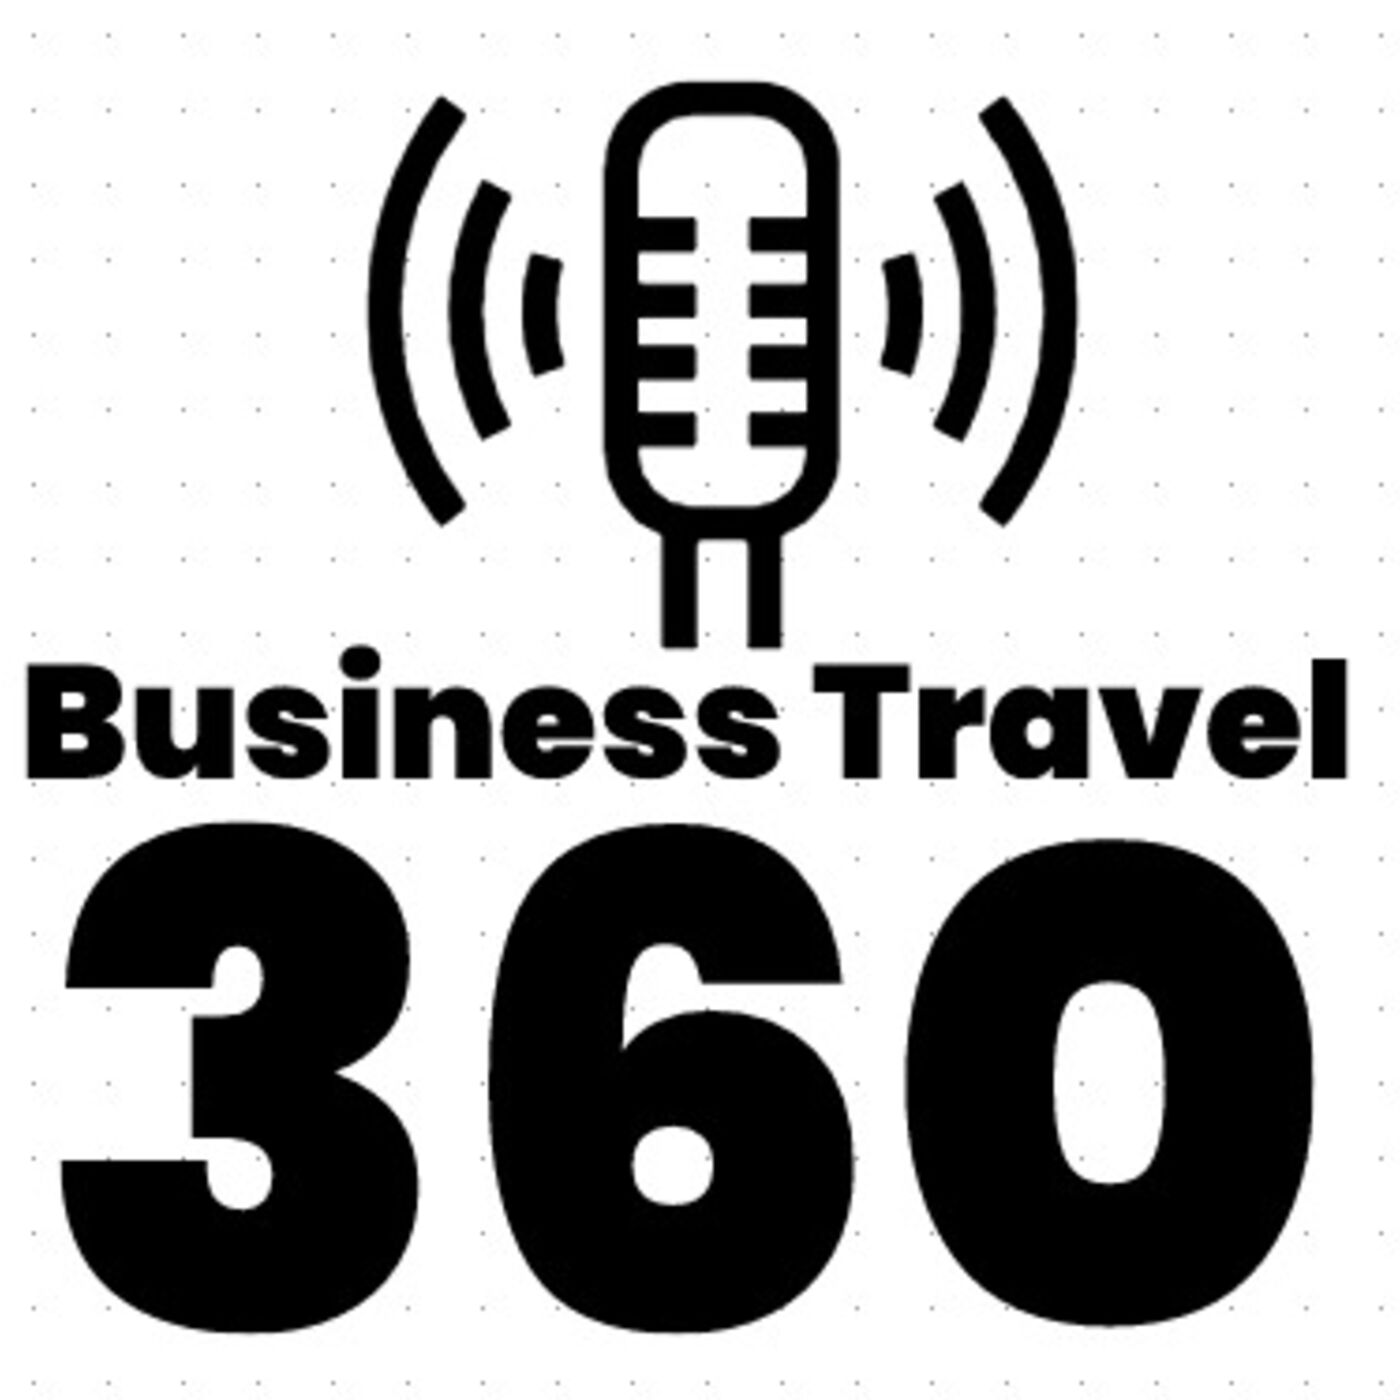 Business Travel 360